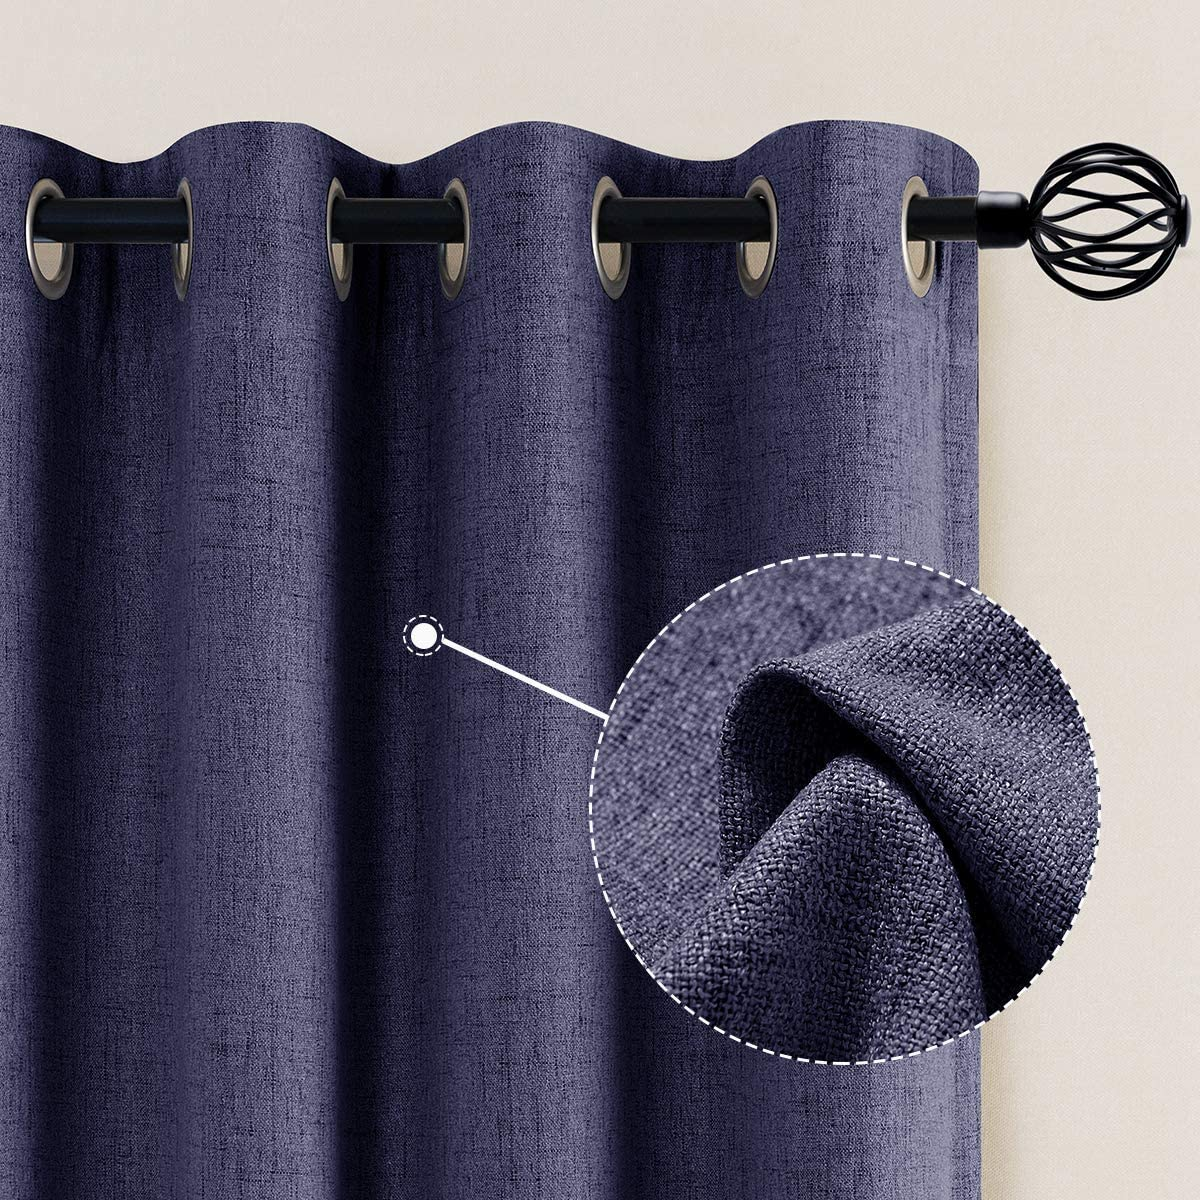 Vangao Linen Blackout Curtains 84 Inches Long Linen Textured Drapes Room Darkening for Living Room Bedroom Window Treatment 2 Panels, Grommet Top, Blue